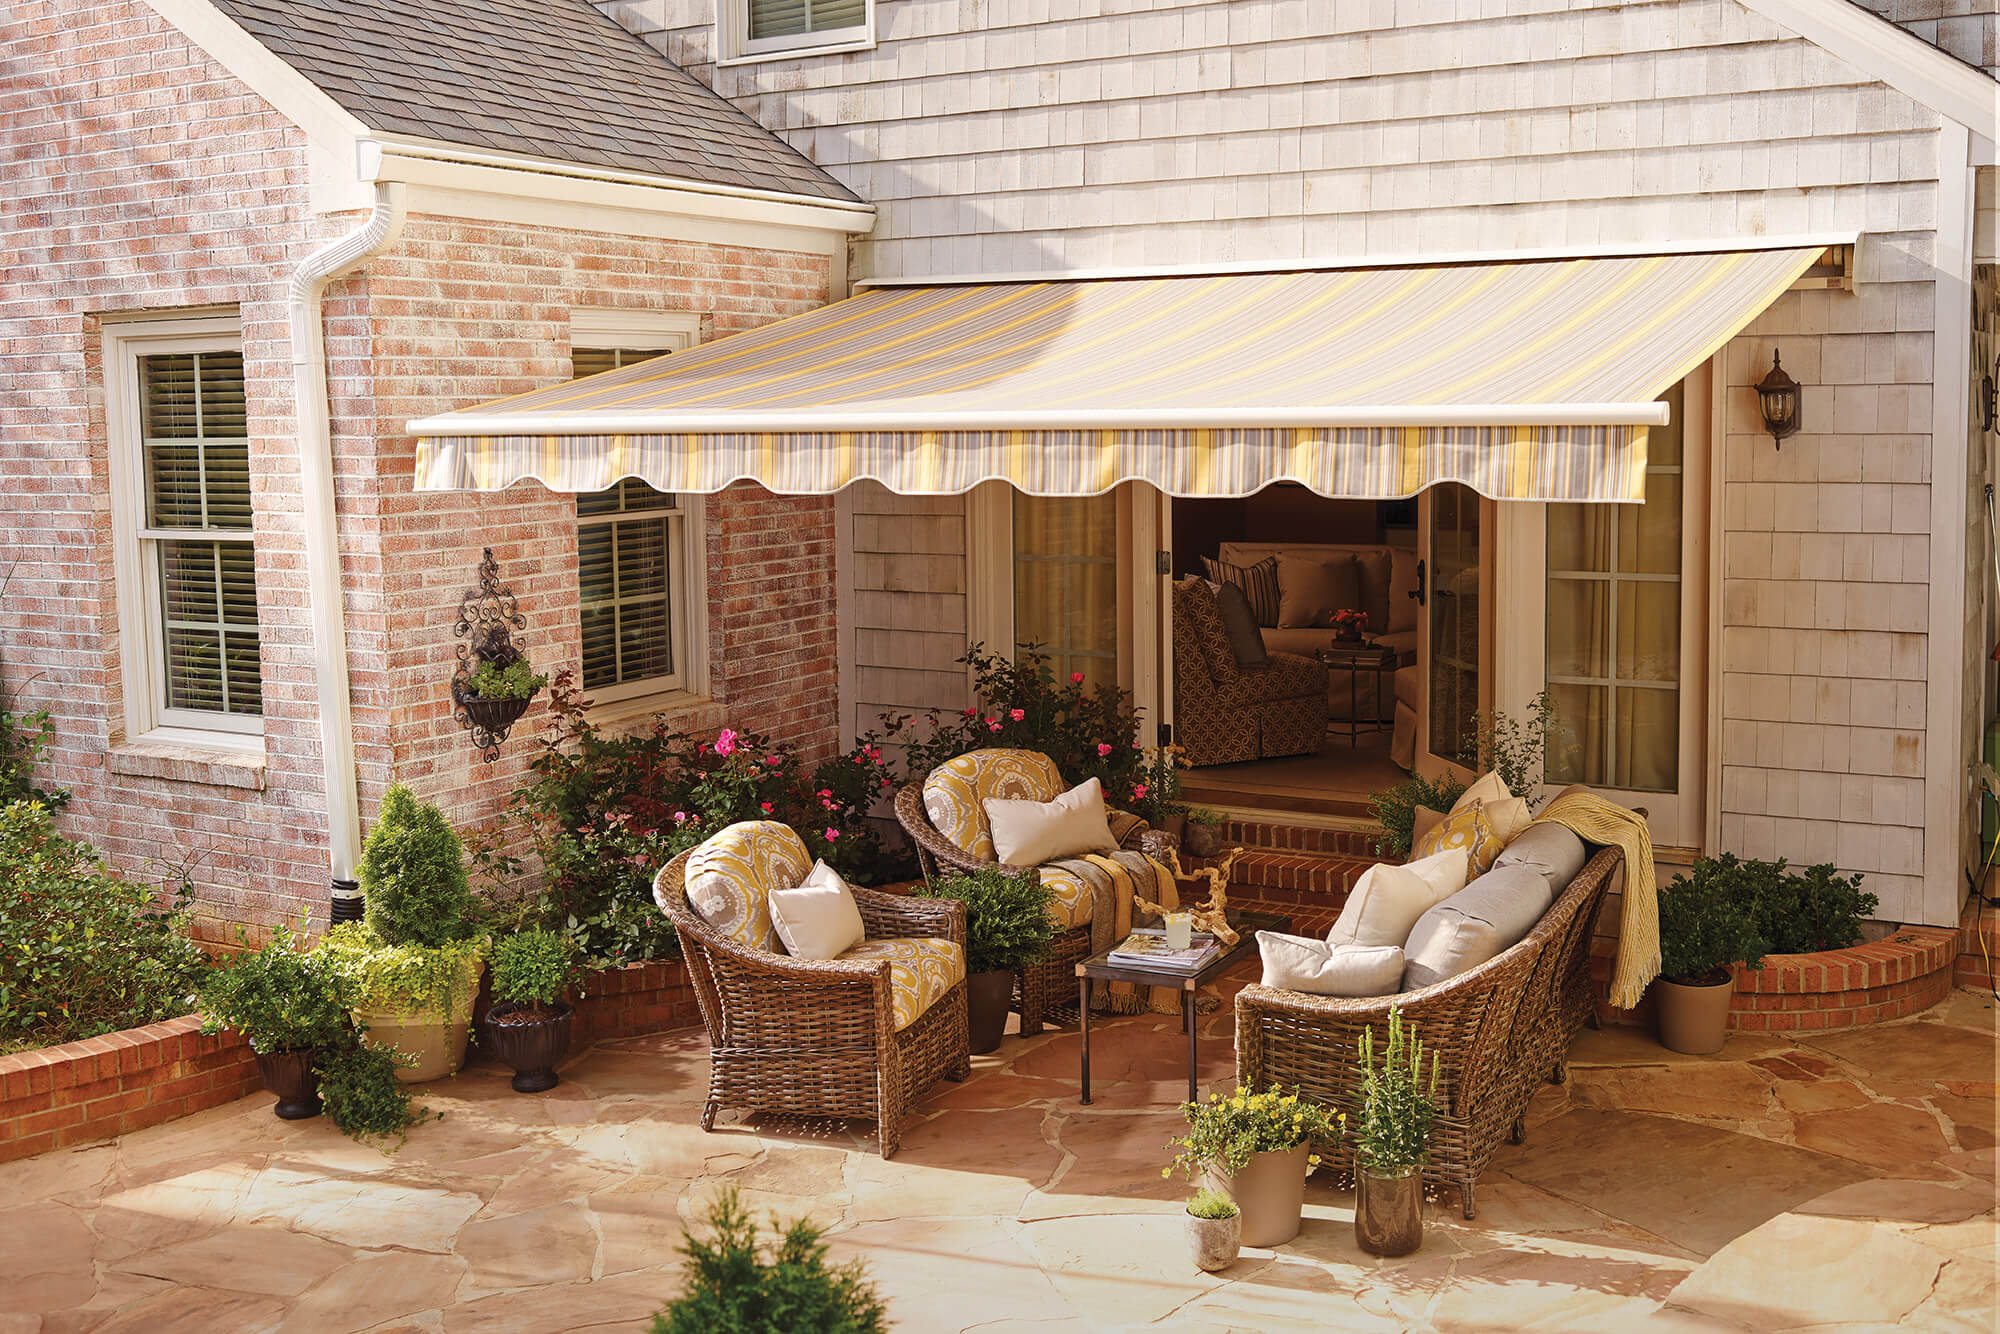 Seating area on a patio shaded by a yellow striped retractable awning